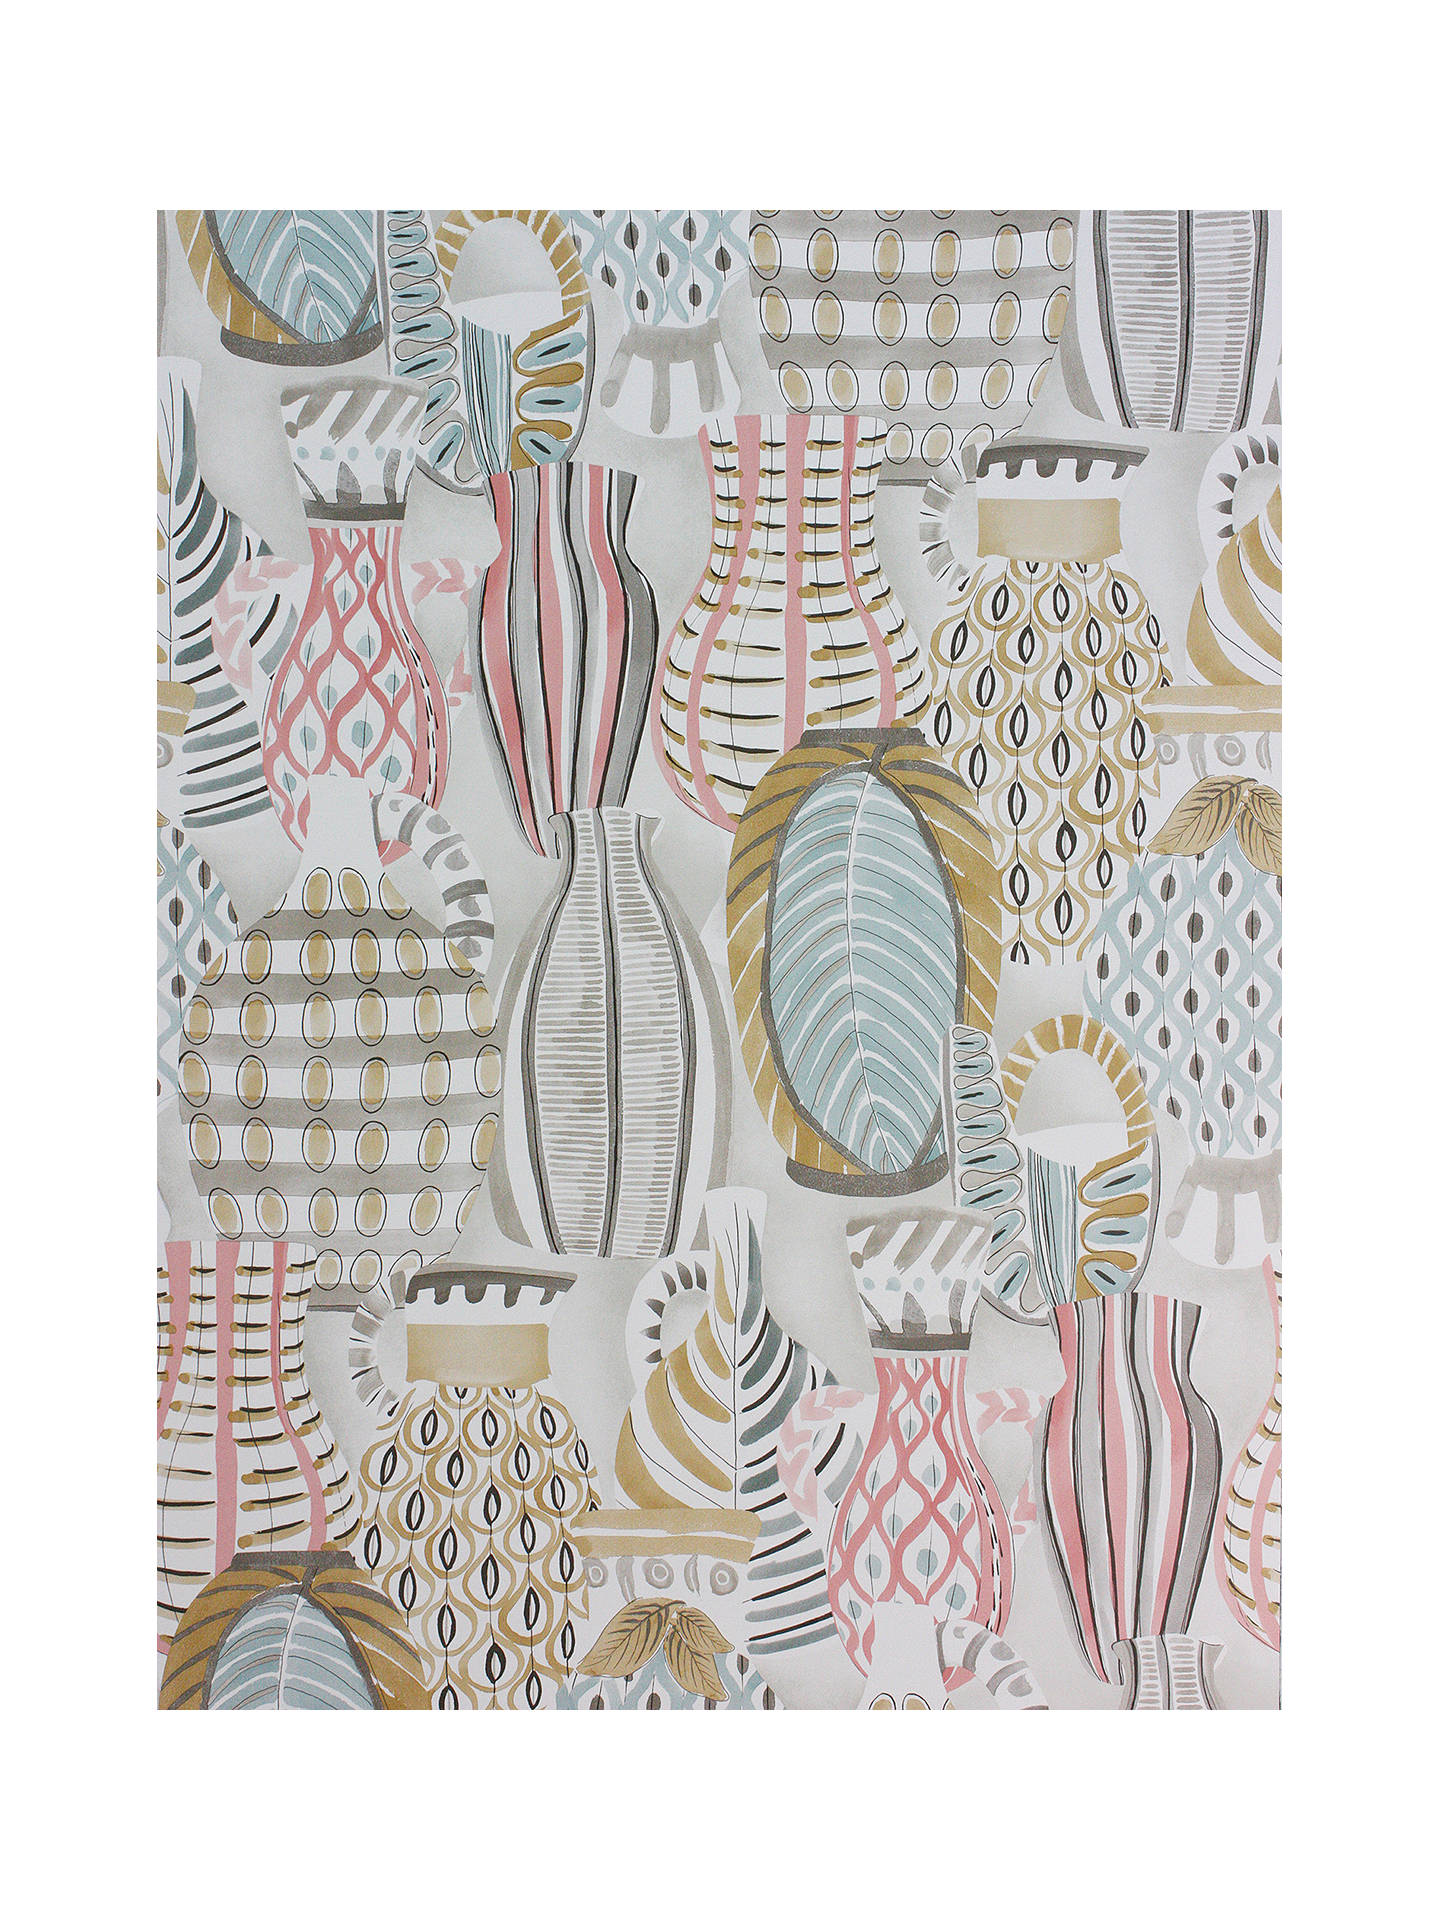 Buy Nina Campbell Collioure Wallpaper NCW4300-01 Online at johnlewis.com